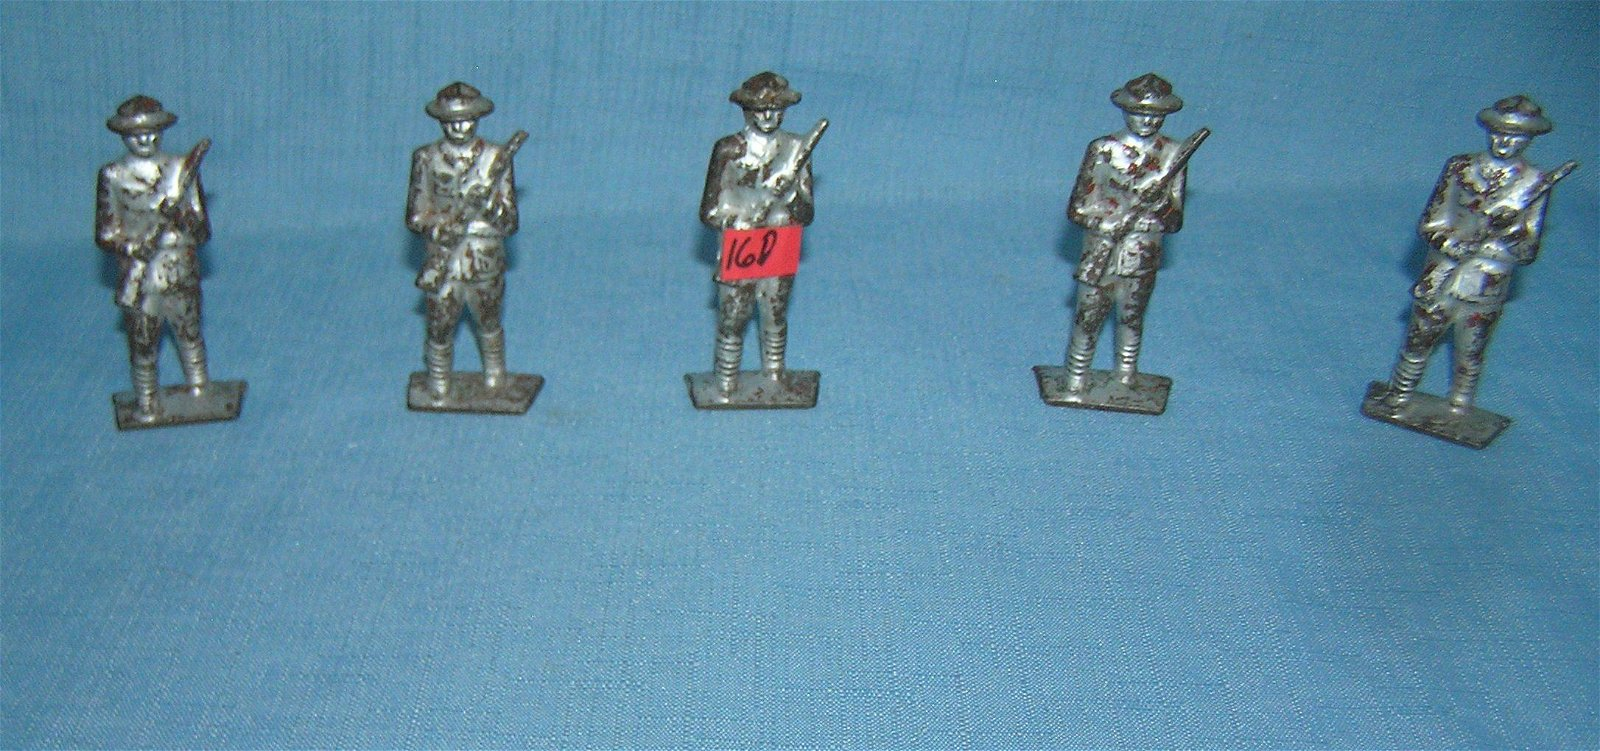 Group of Gray Iron cast iron toy soldiers